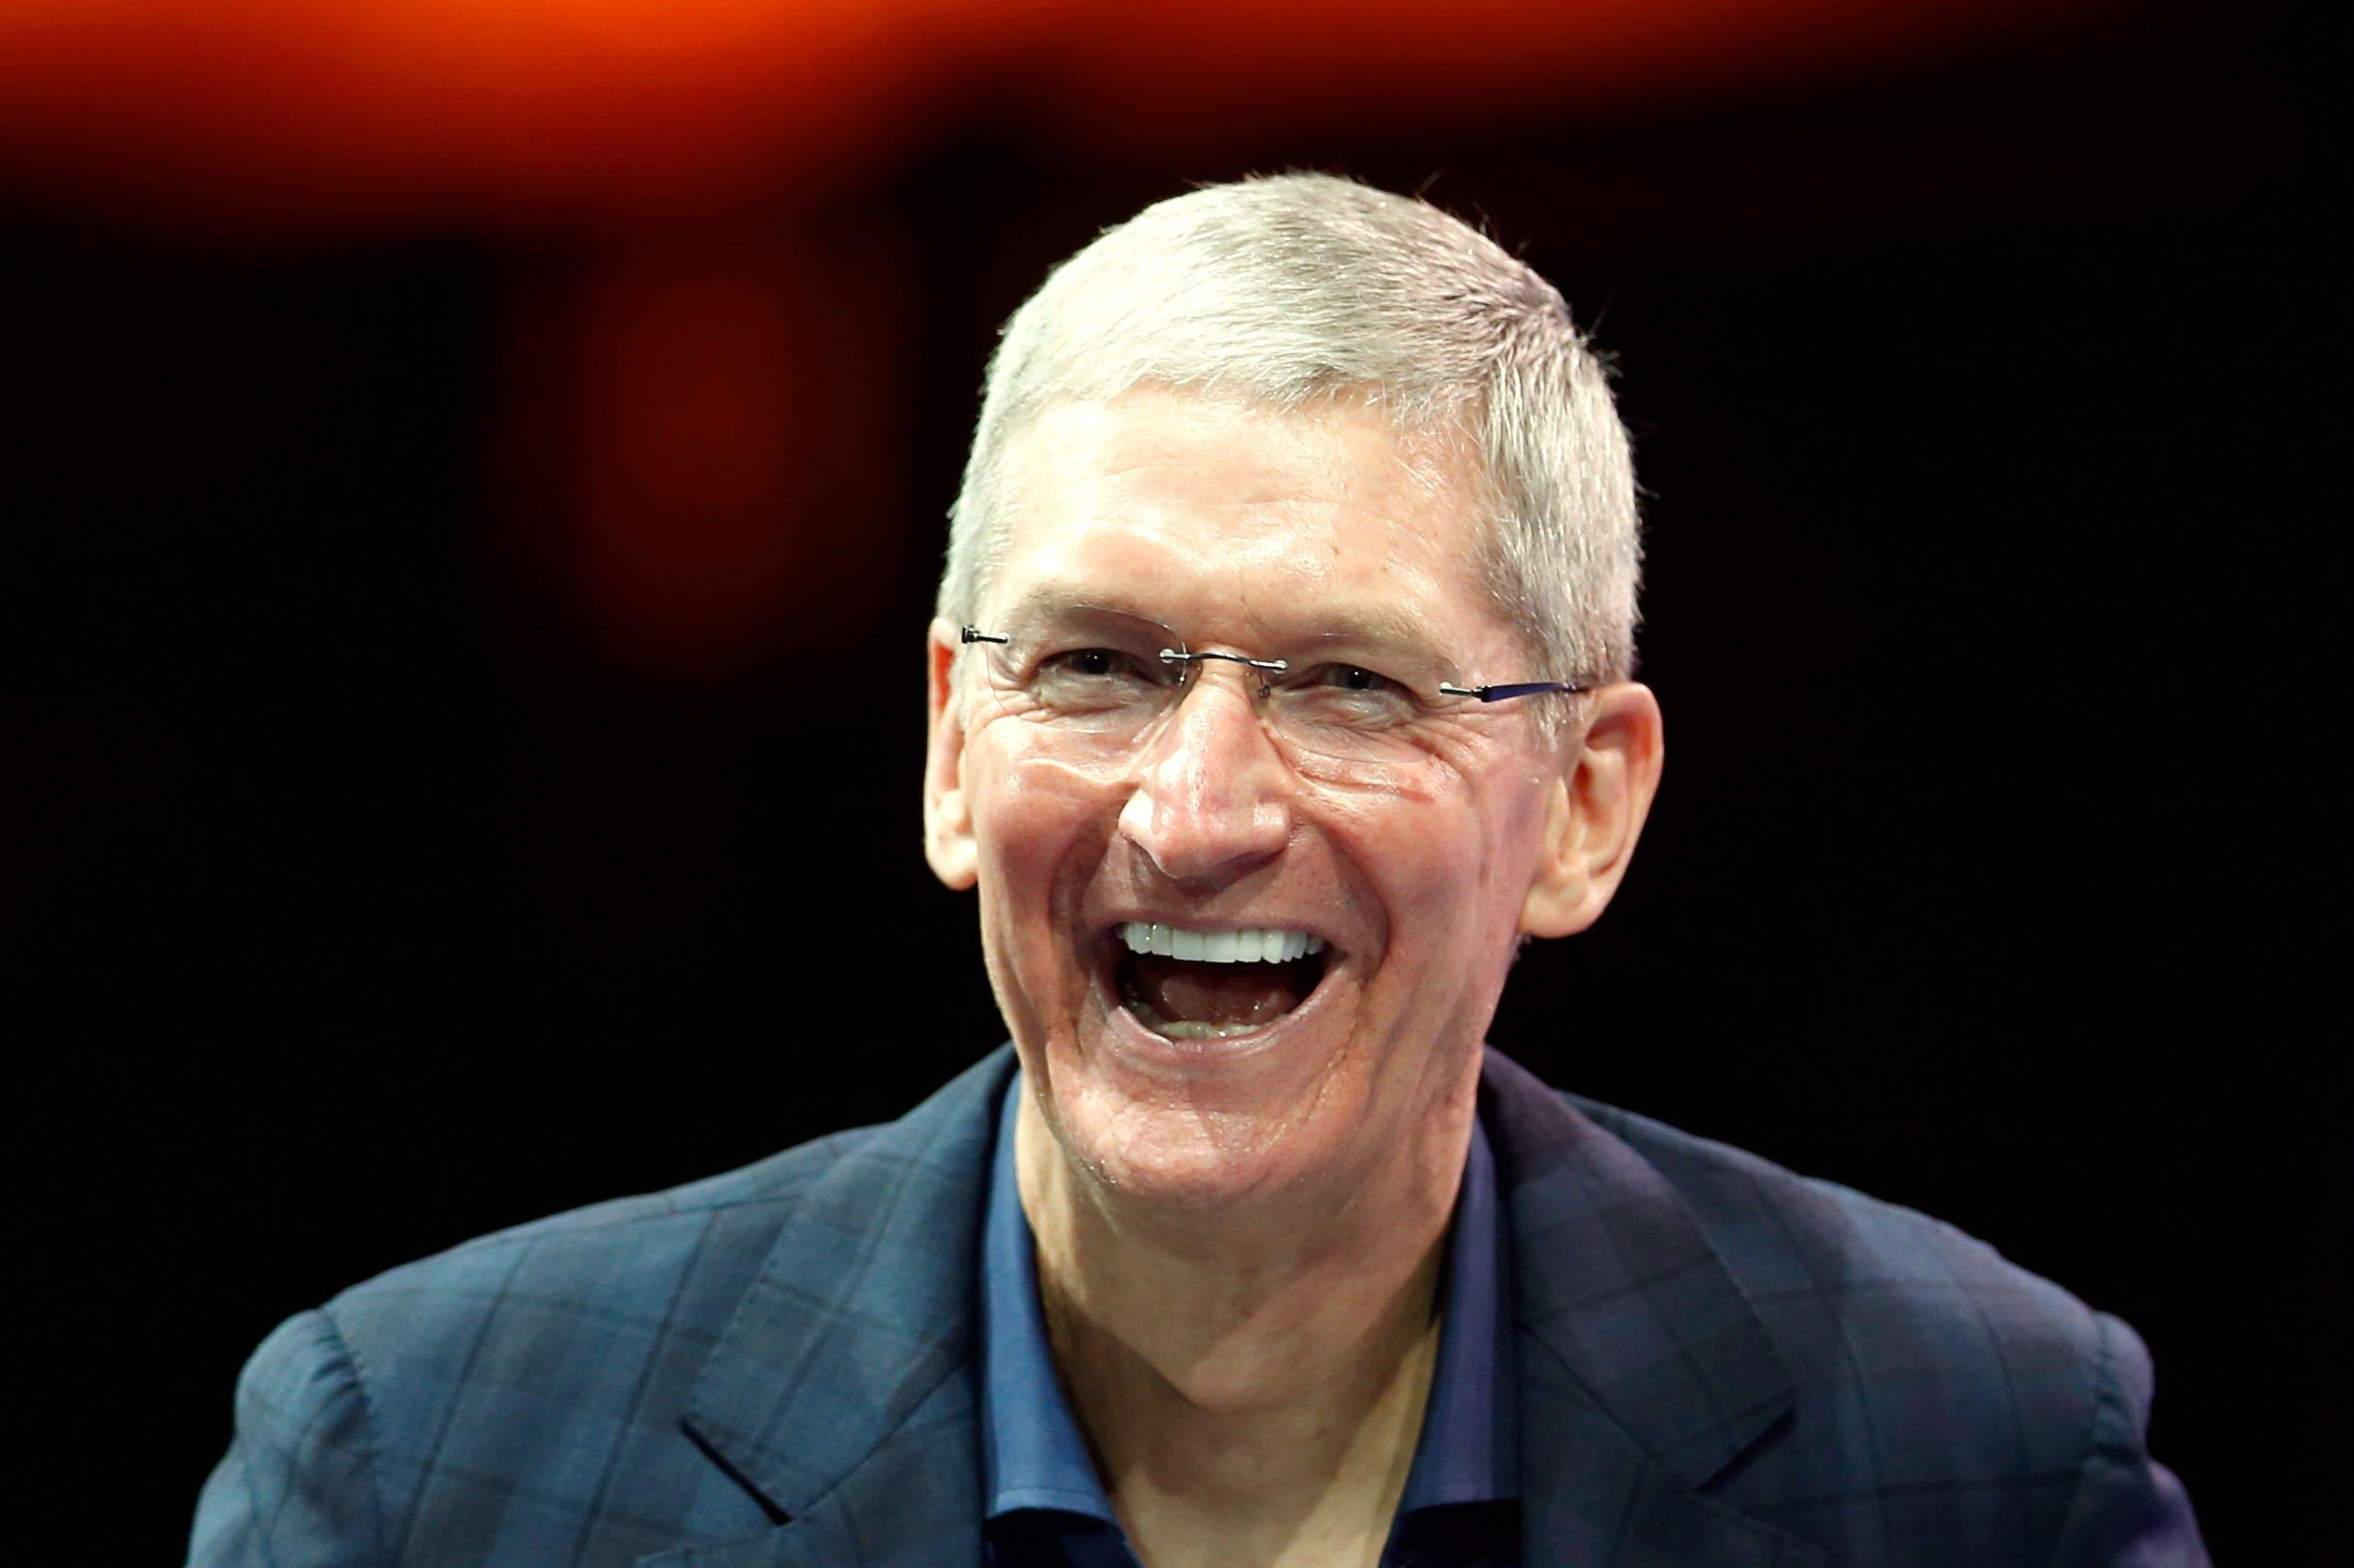 Will Tim Cook Pave the Way for